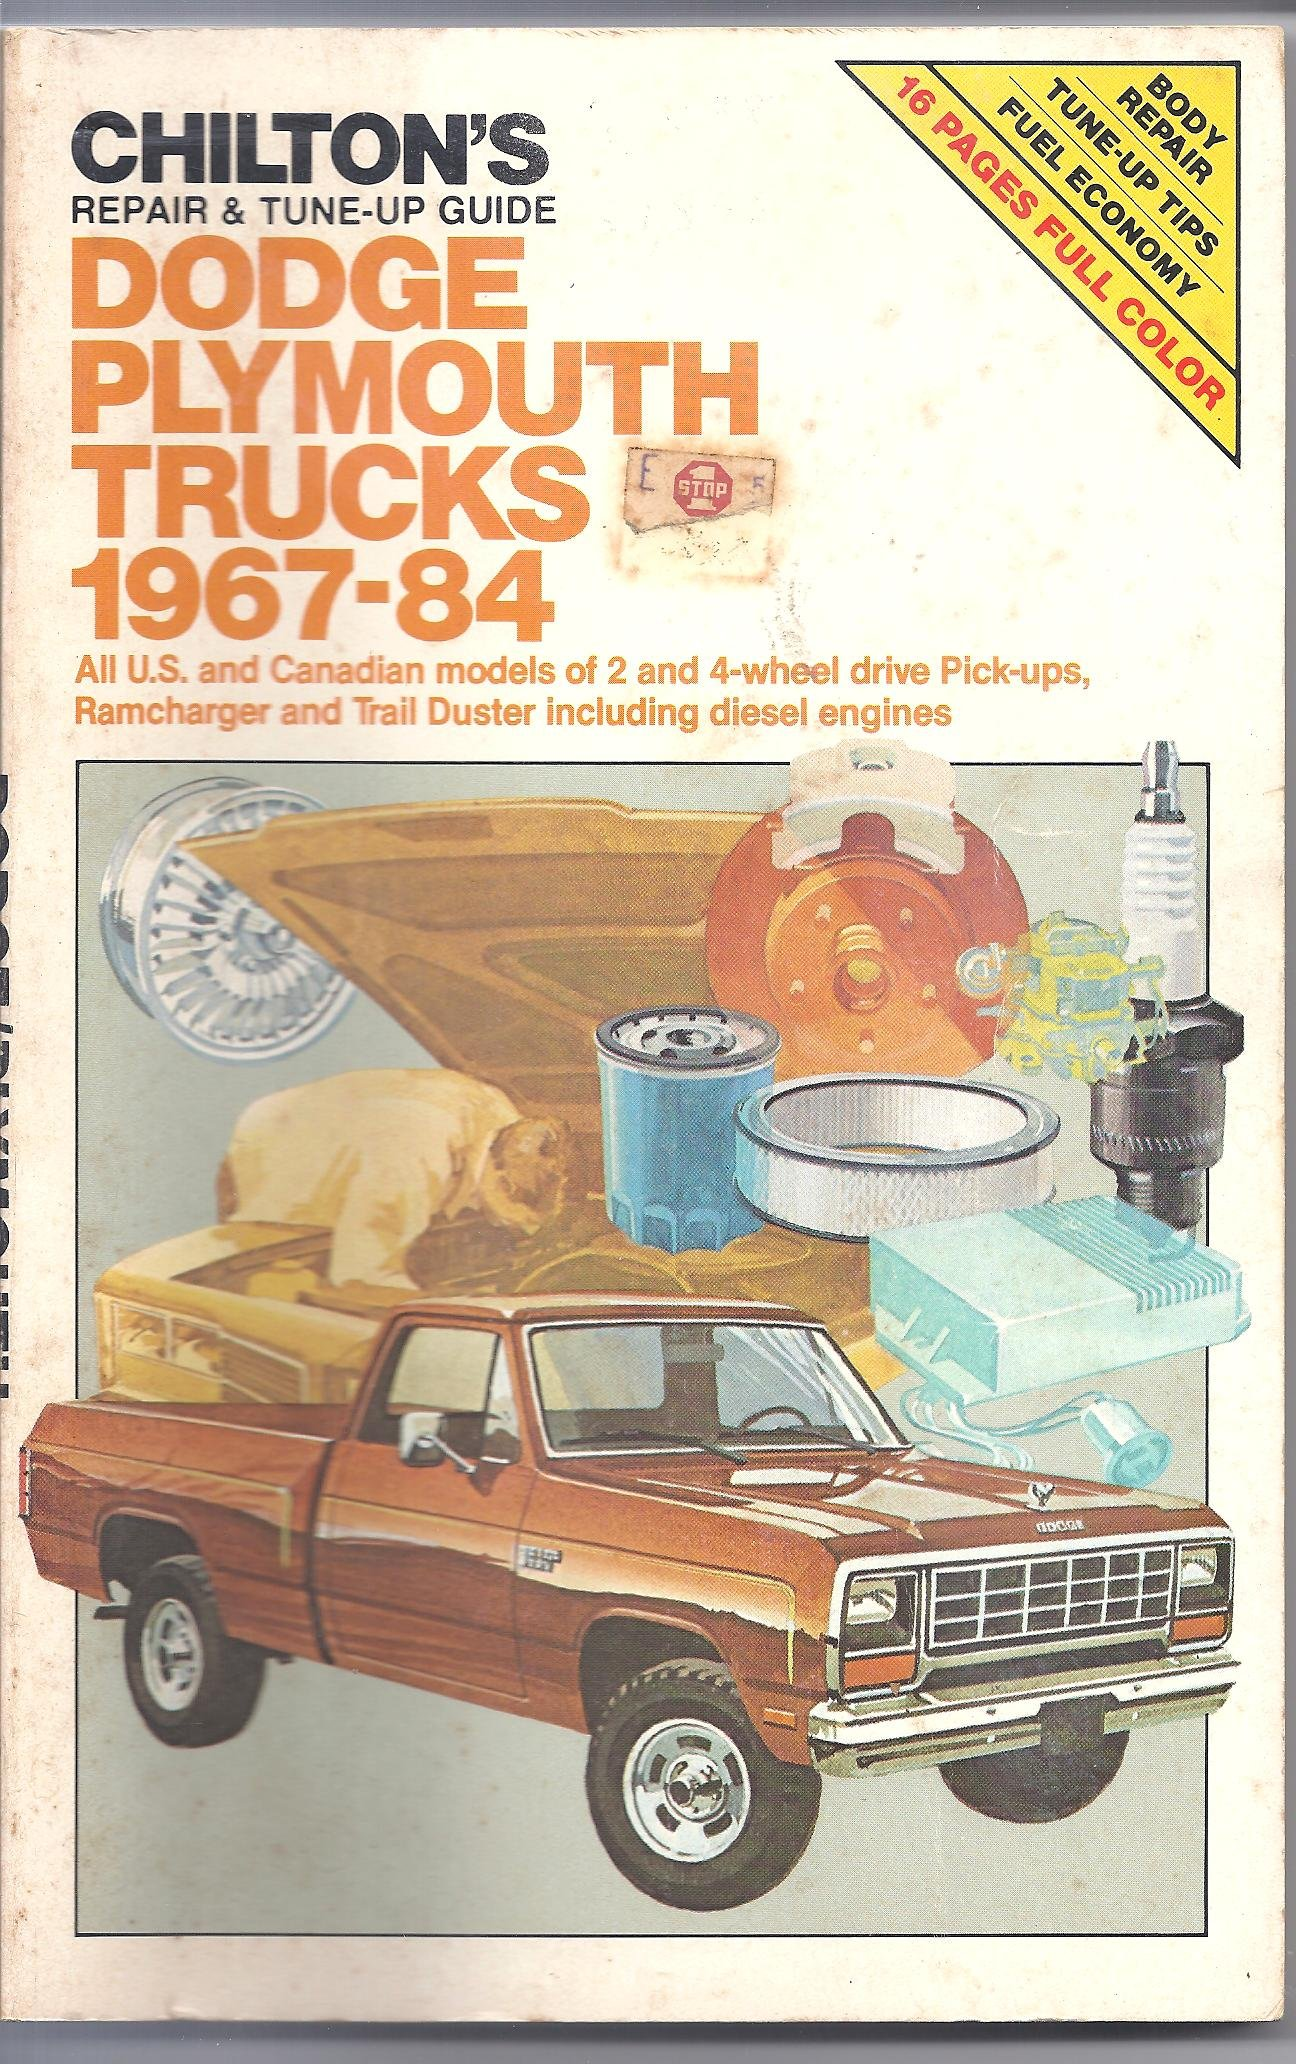 Chilton's repair & tune-up guide, Dodge, Plymouth trucks, 1967-84: All U.S.  and Canadian models of 2 and 4-wheel drive pick-ups, Ramcharger and Trail  Duster ...